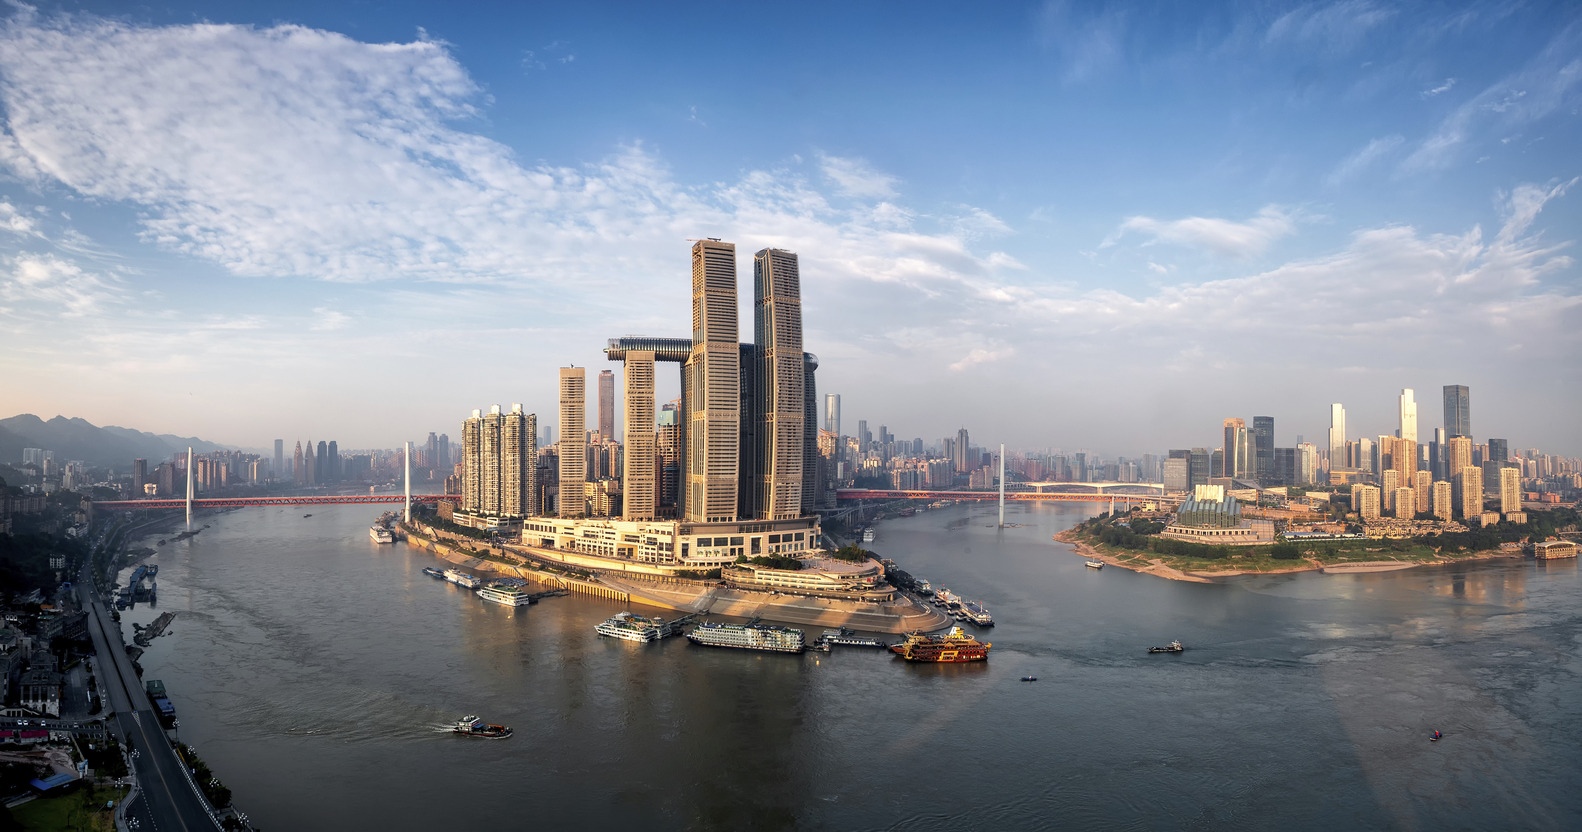 Photographer - Hongguang Li. Image Courtesy of CapitaLand